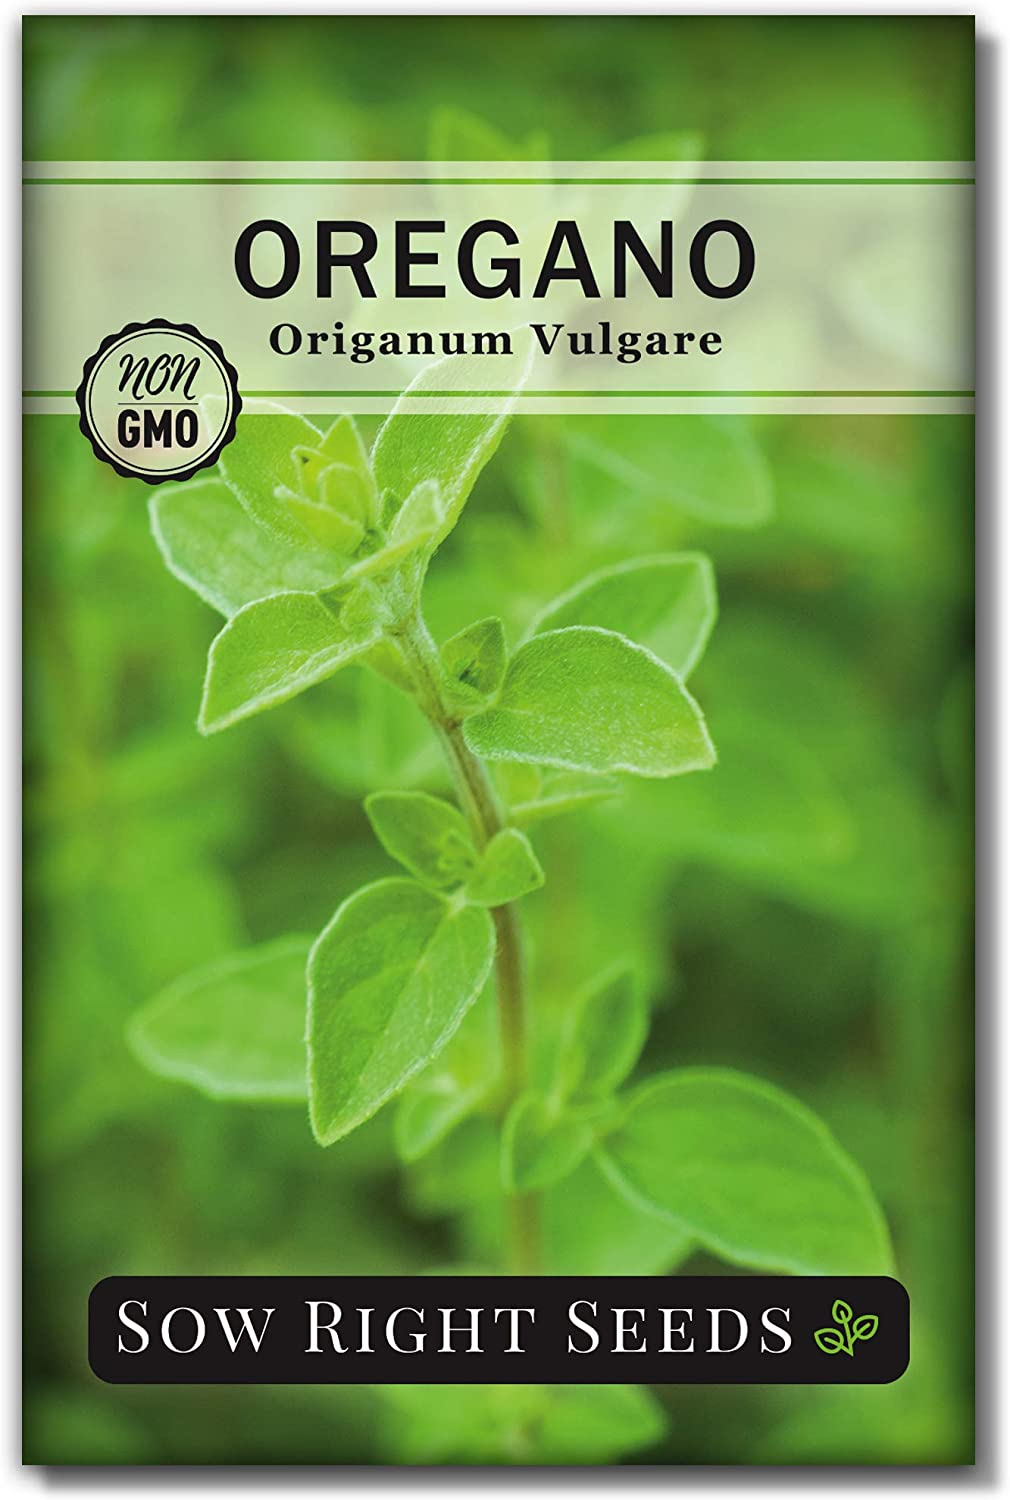 Sow Right Seeds - Oregano Seed for Planting